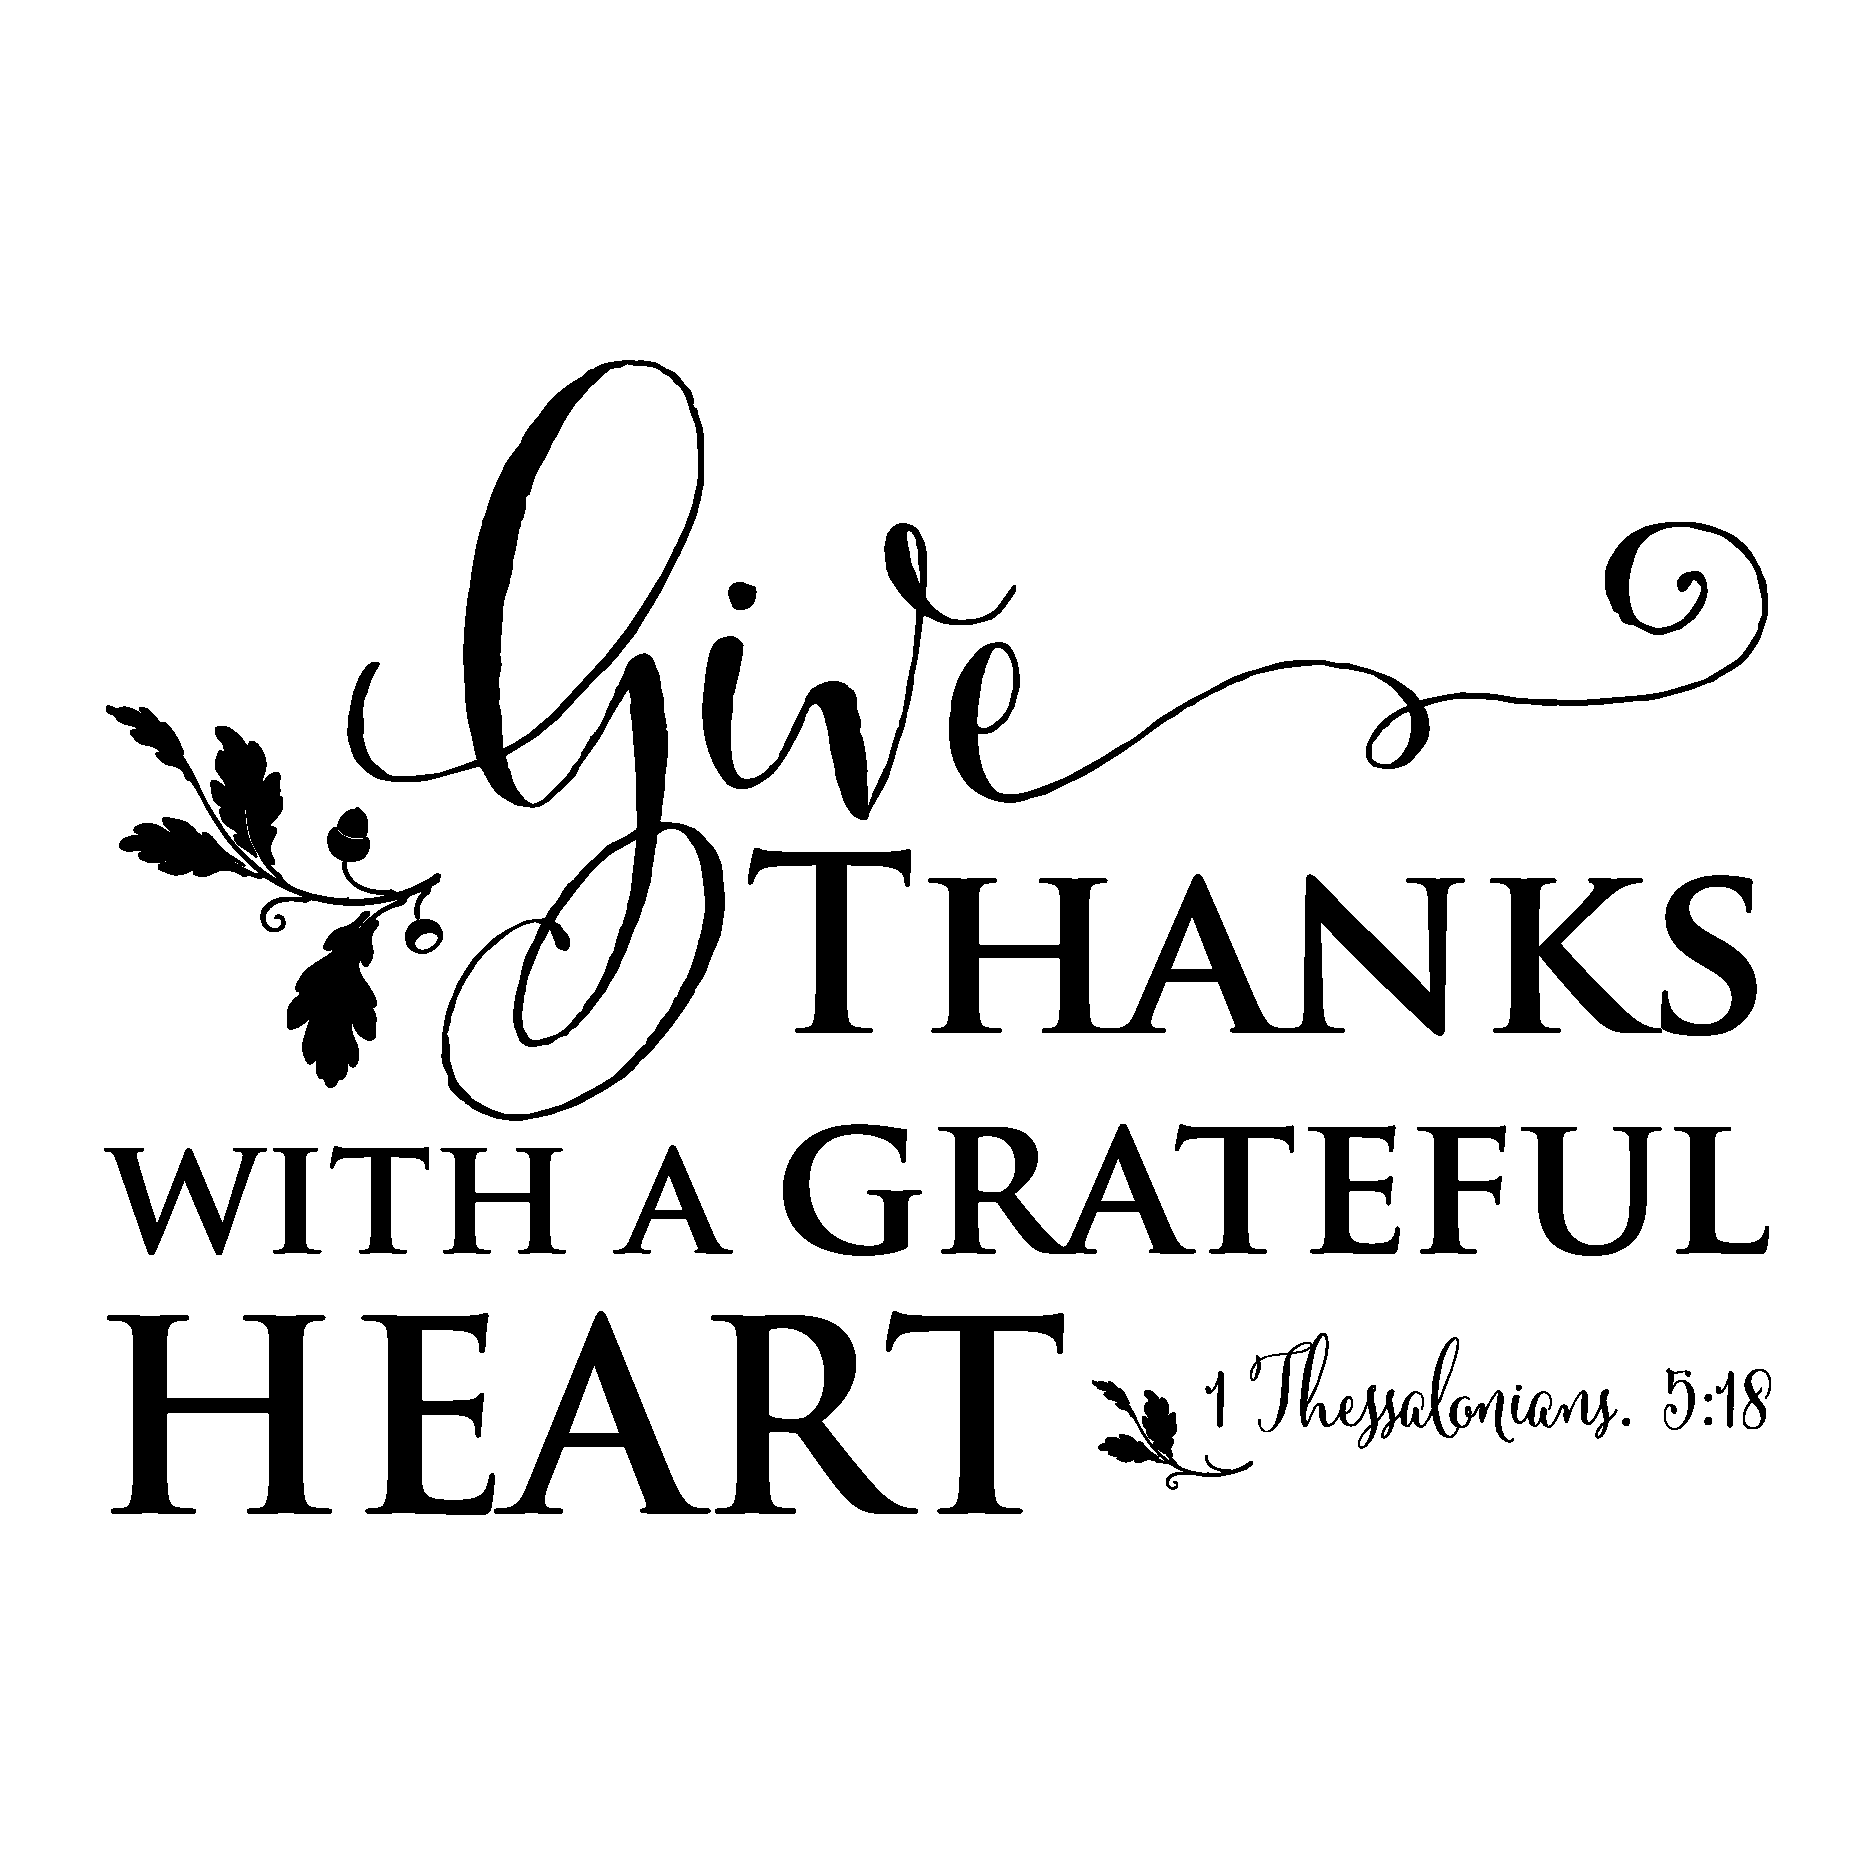 grateful heart wall quotes u2122 decal